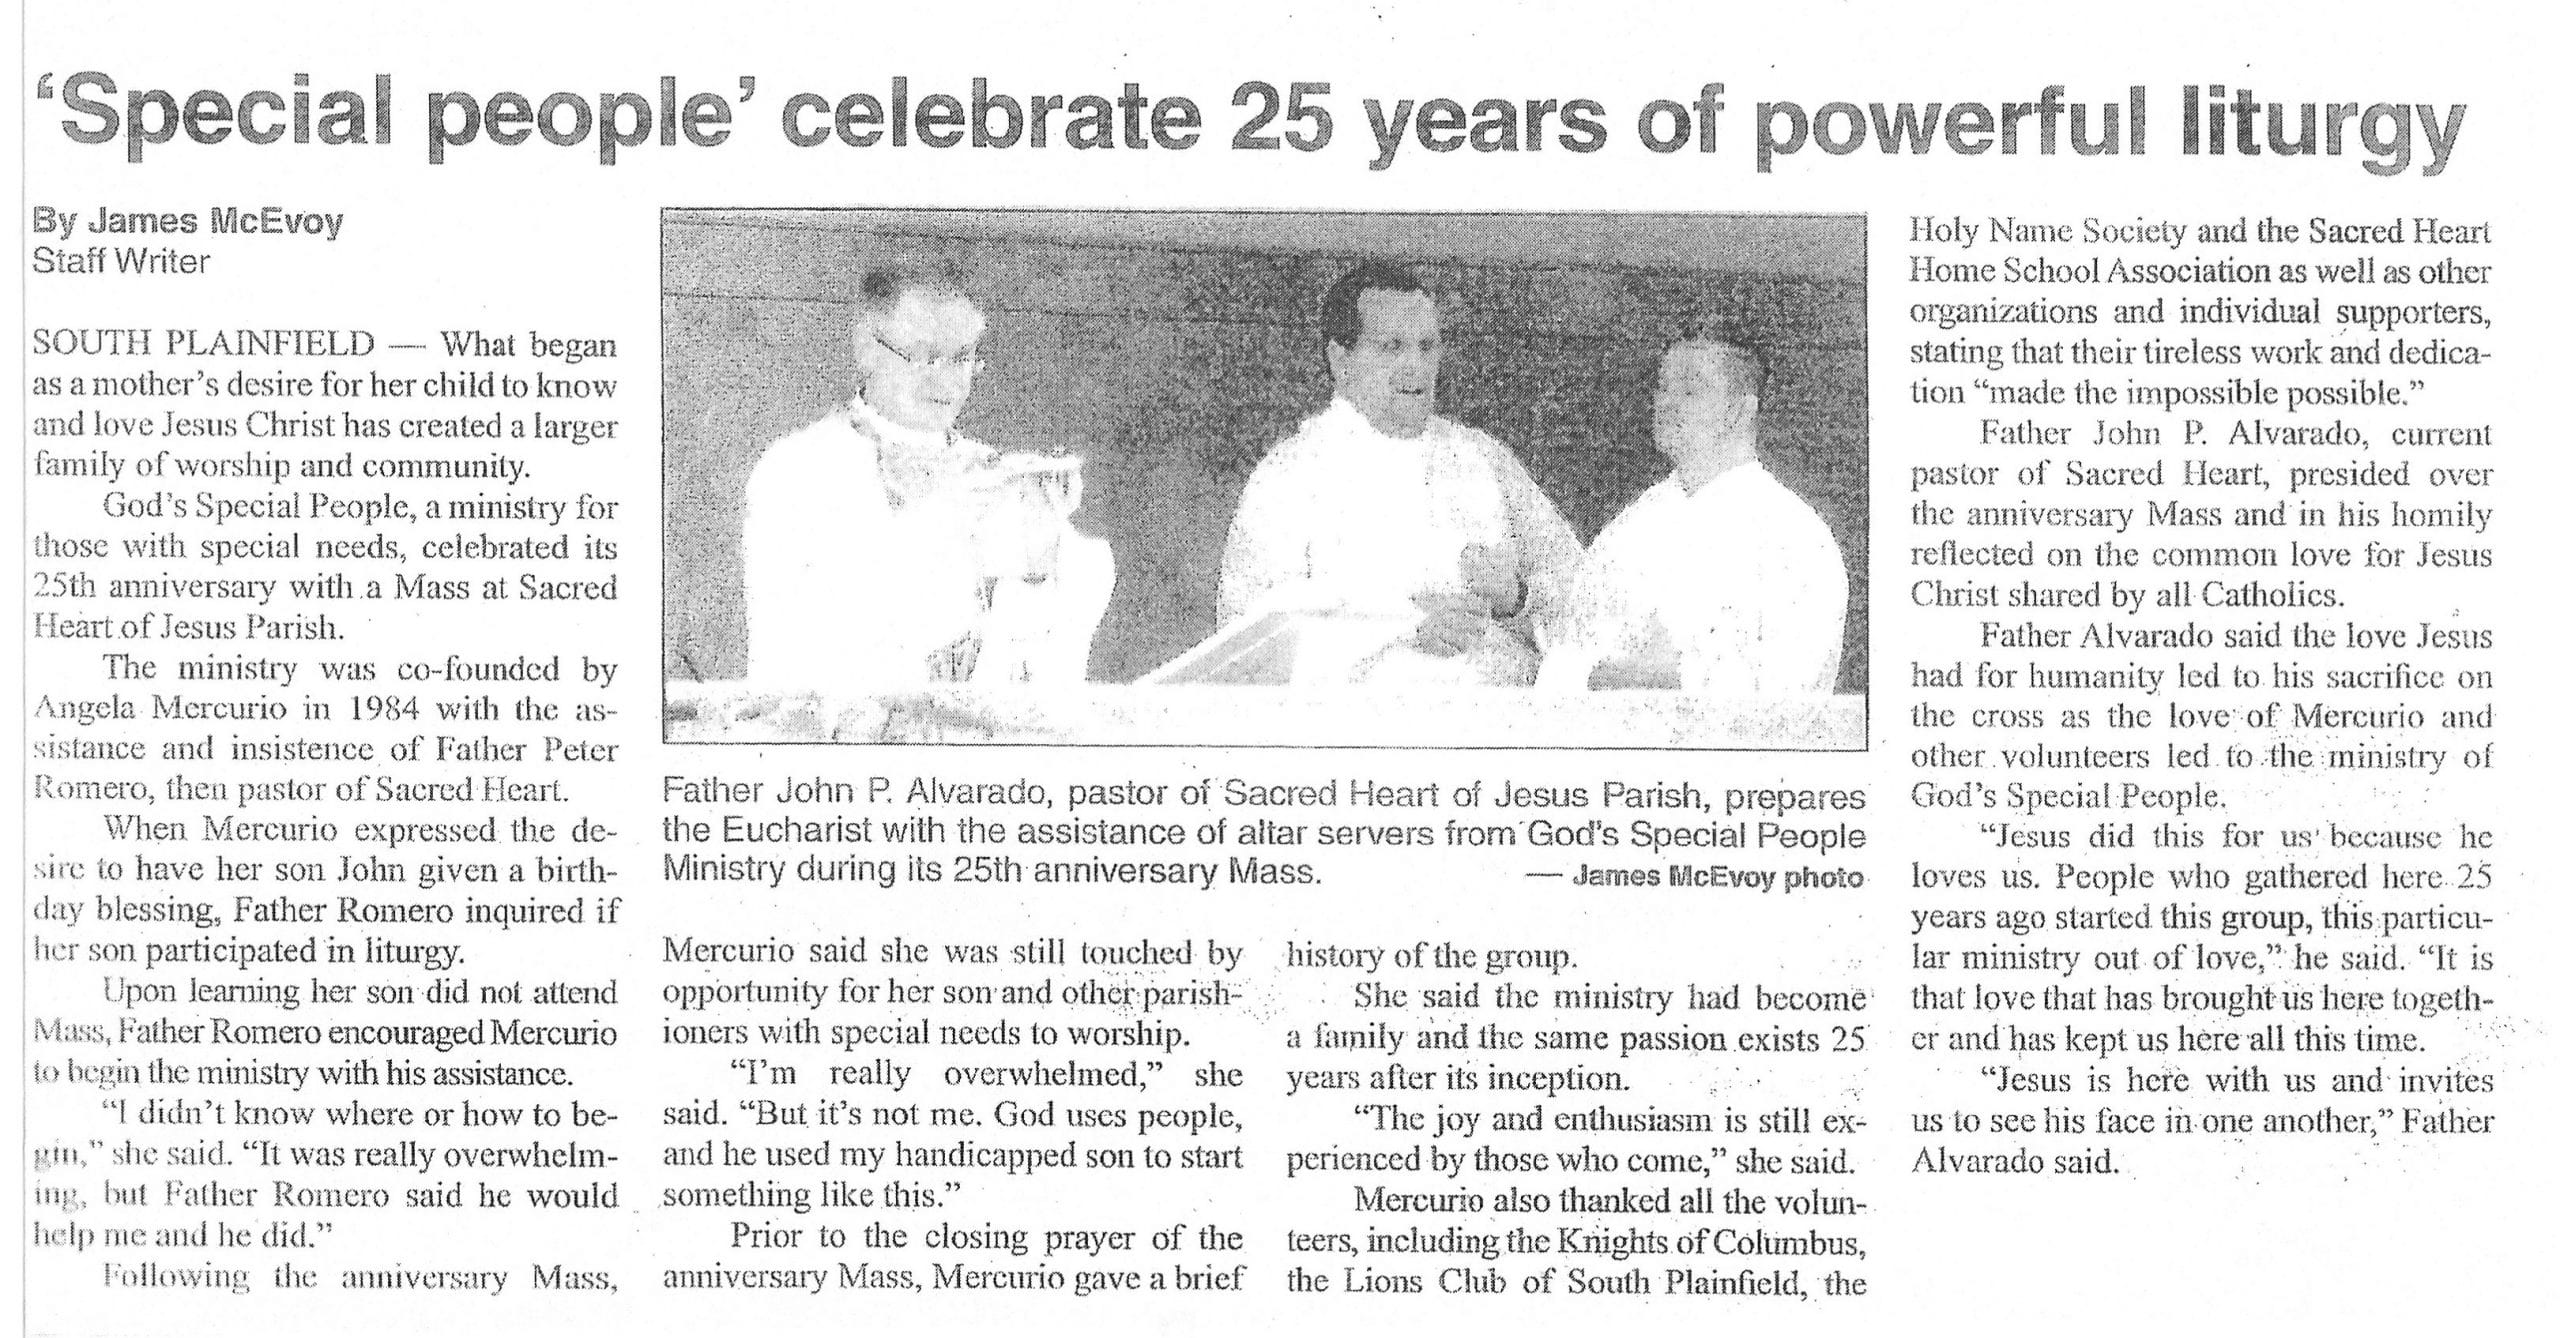 God's Special People celebrates 25th anniversary, 2009